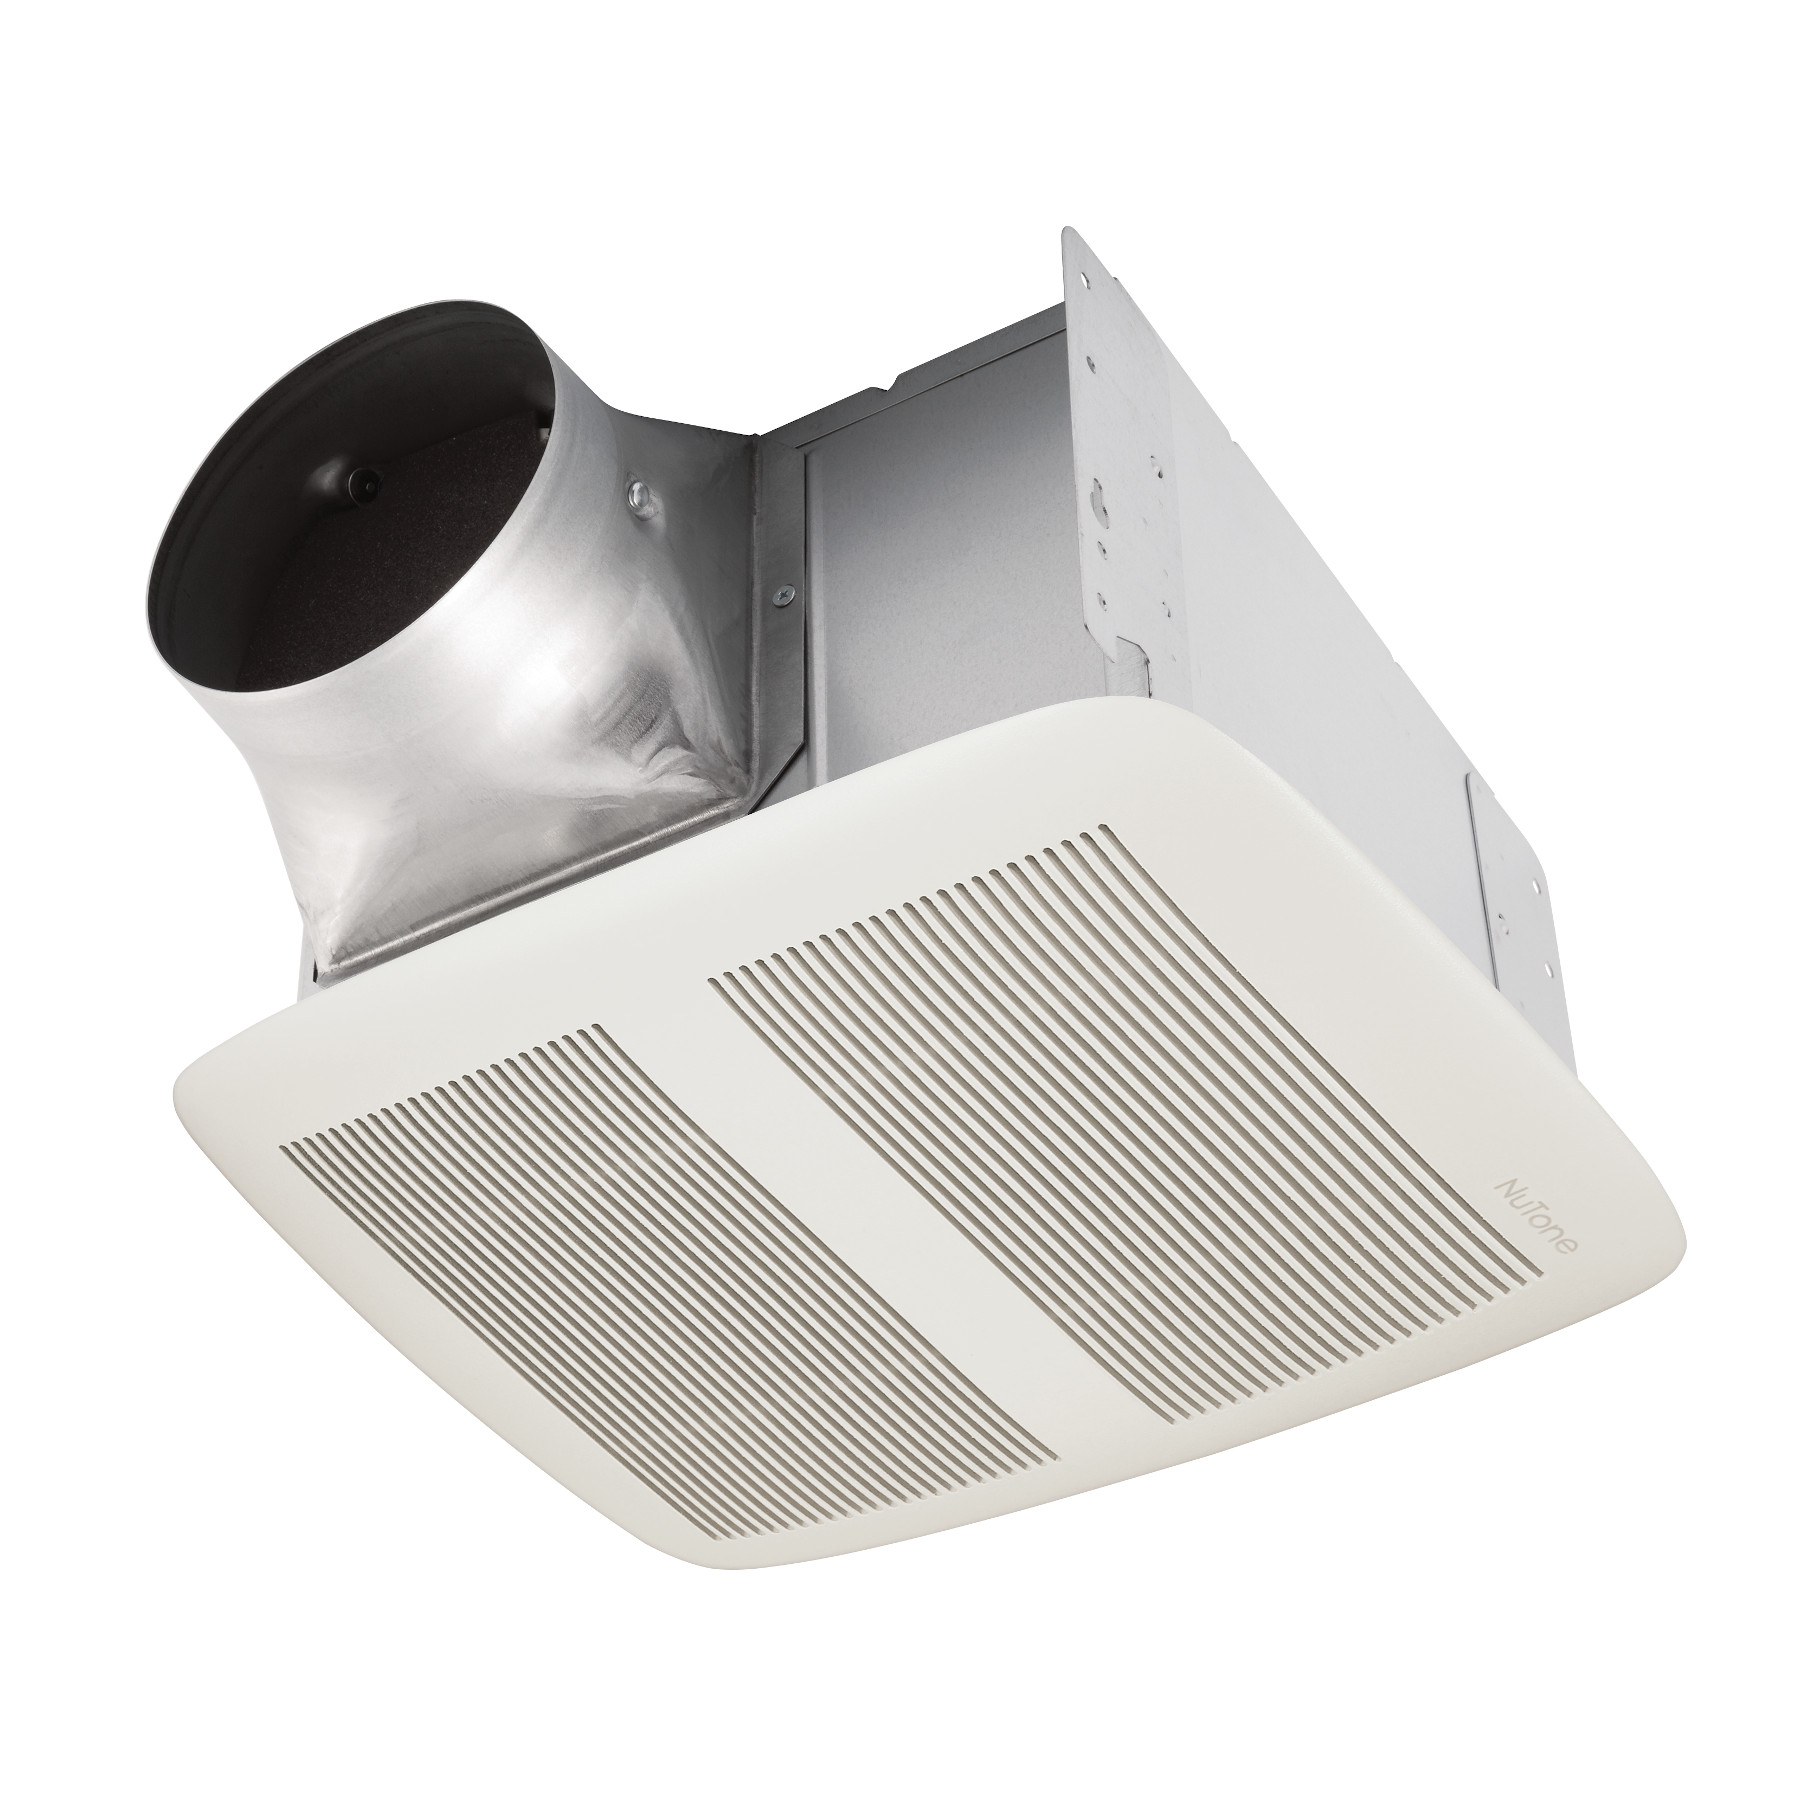 NuTone® QTXE 150 CFM Ventilation Fan with White Grille, 1.4 Sones; ENERGY STAR®